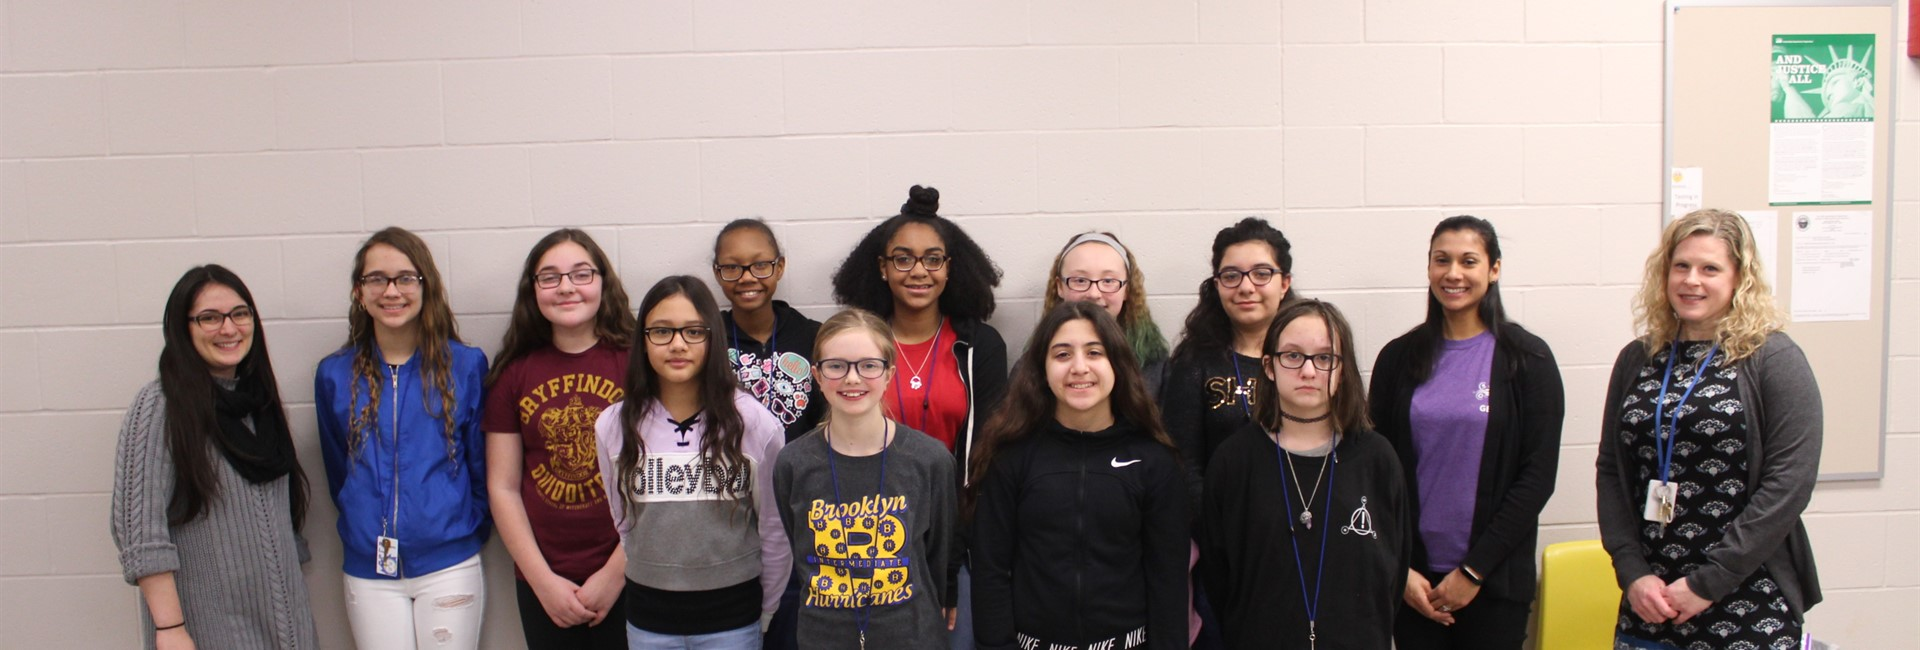 Brooklyn Middle School students who participated in the GE Girls program.